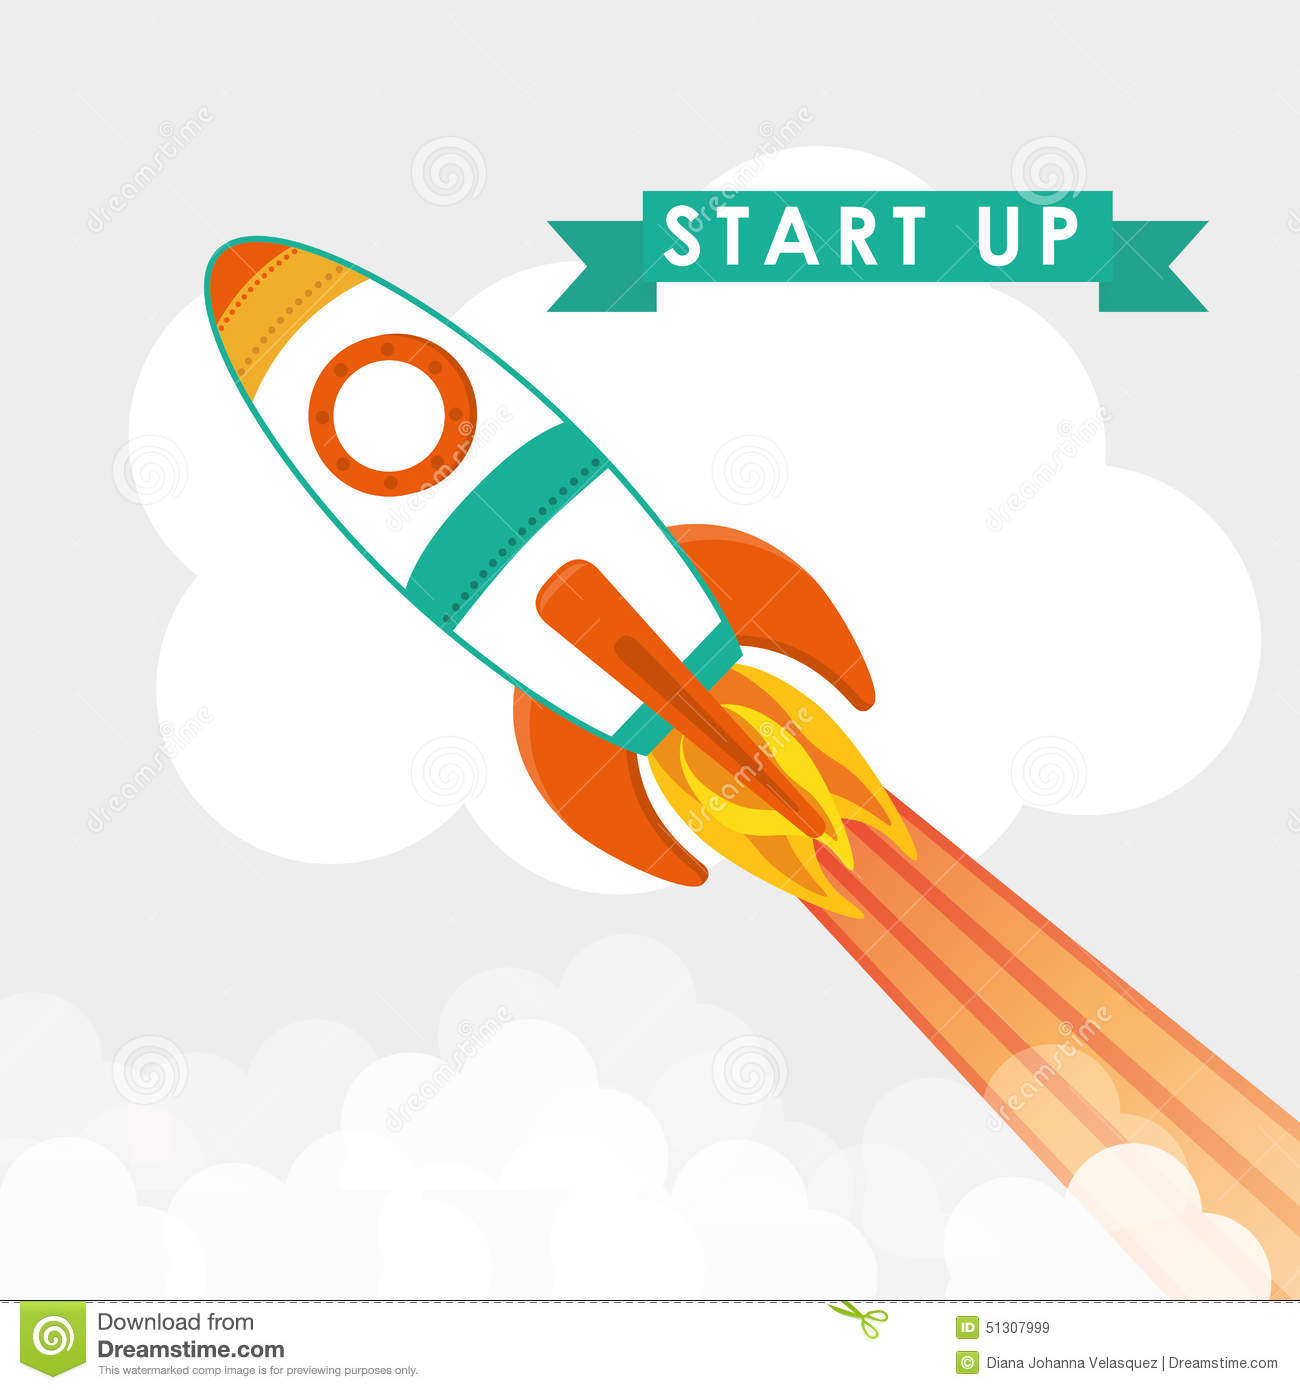 how to start up a website business